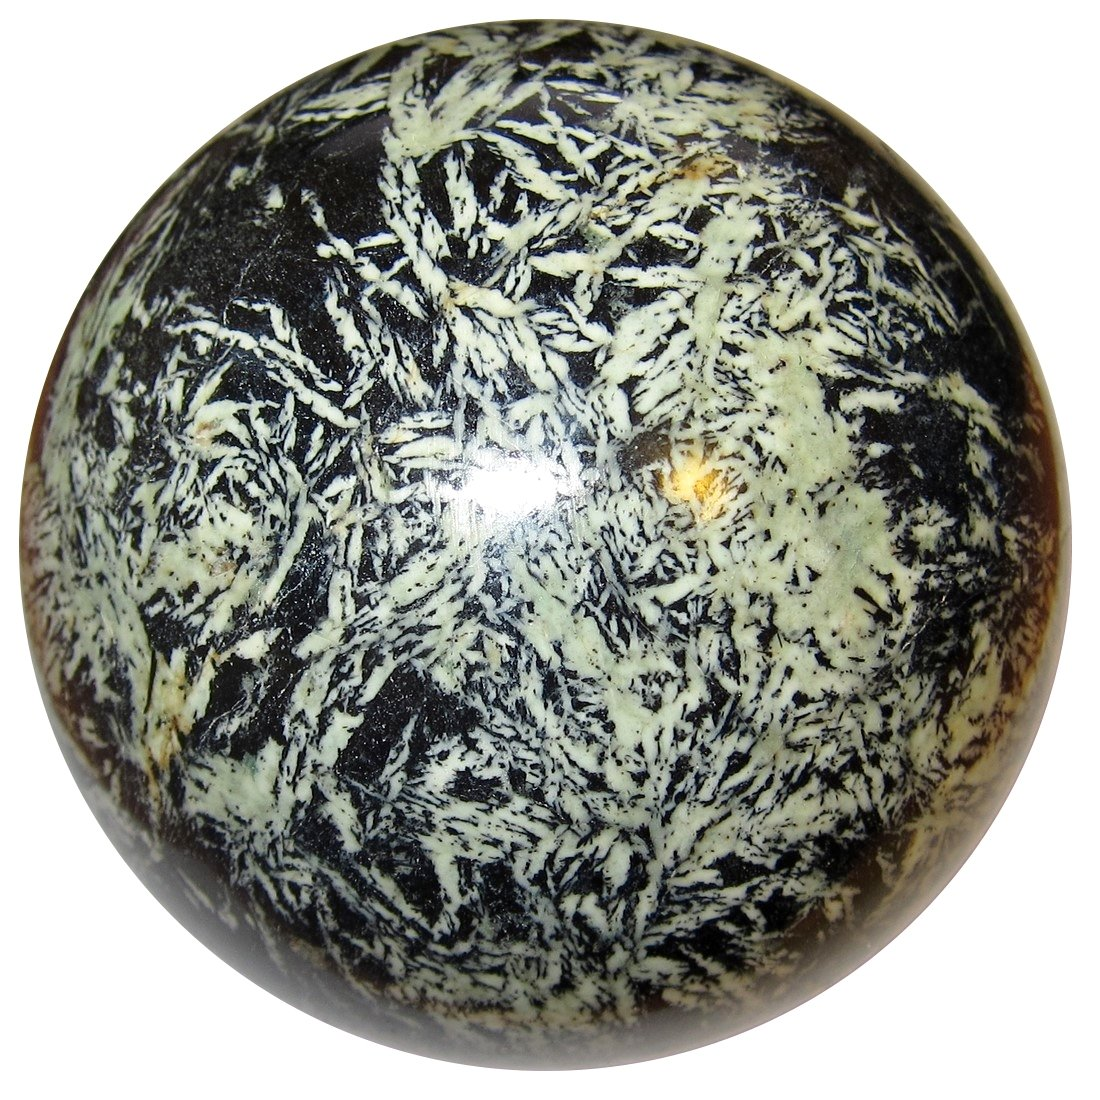 Satin Crystals Chrysanthemum Ball 3.5'' Collectible Rare Black White Chinese Writing Stone Tropical Jungle Sphere C01